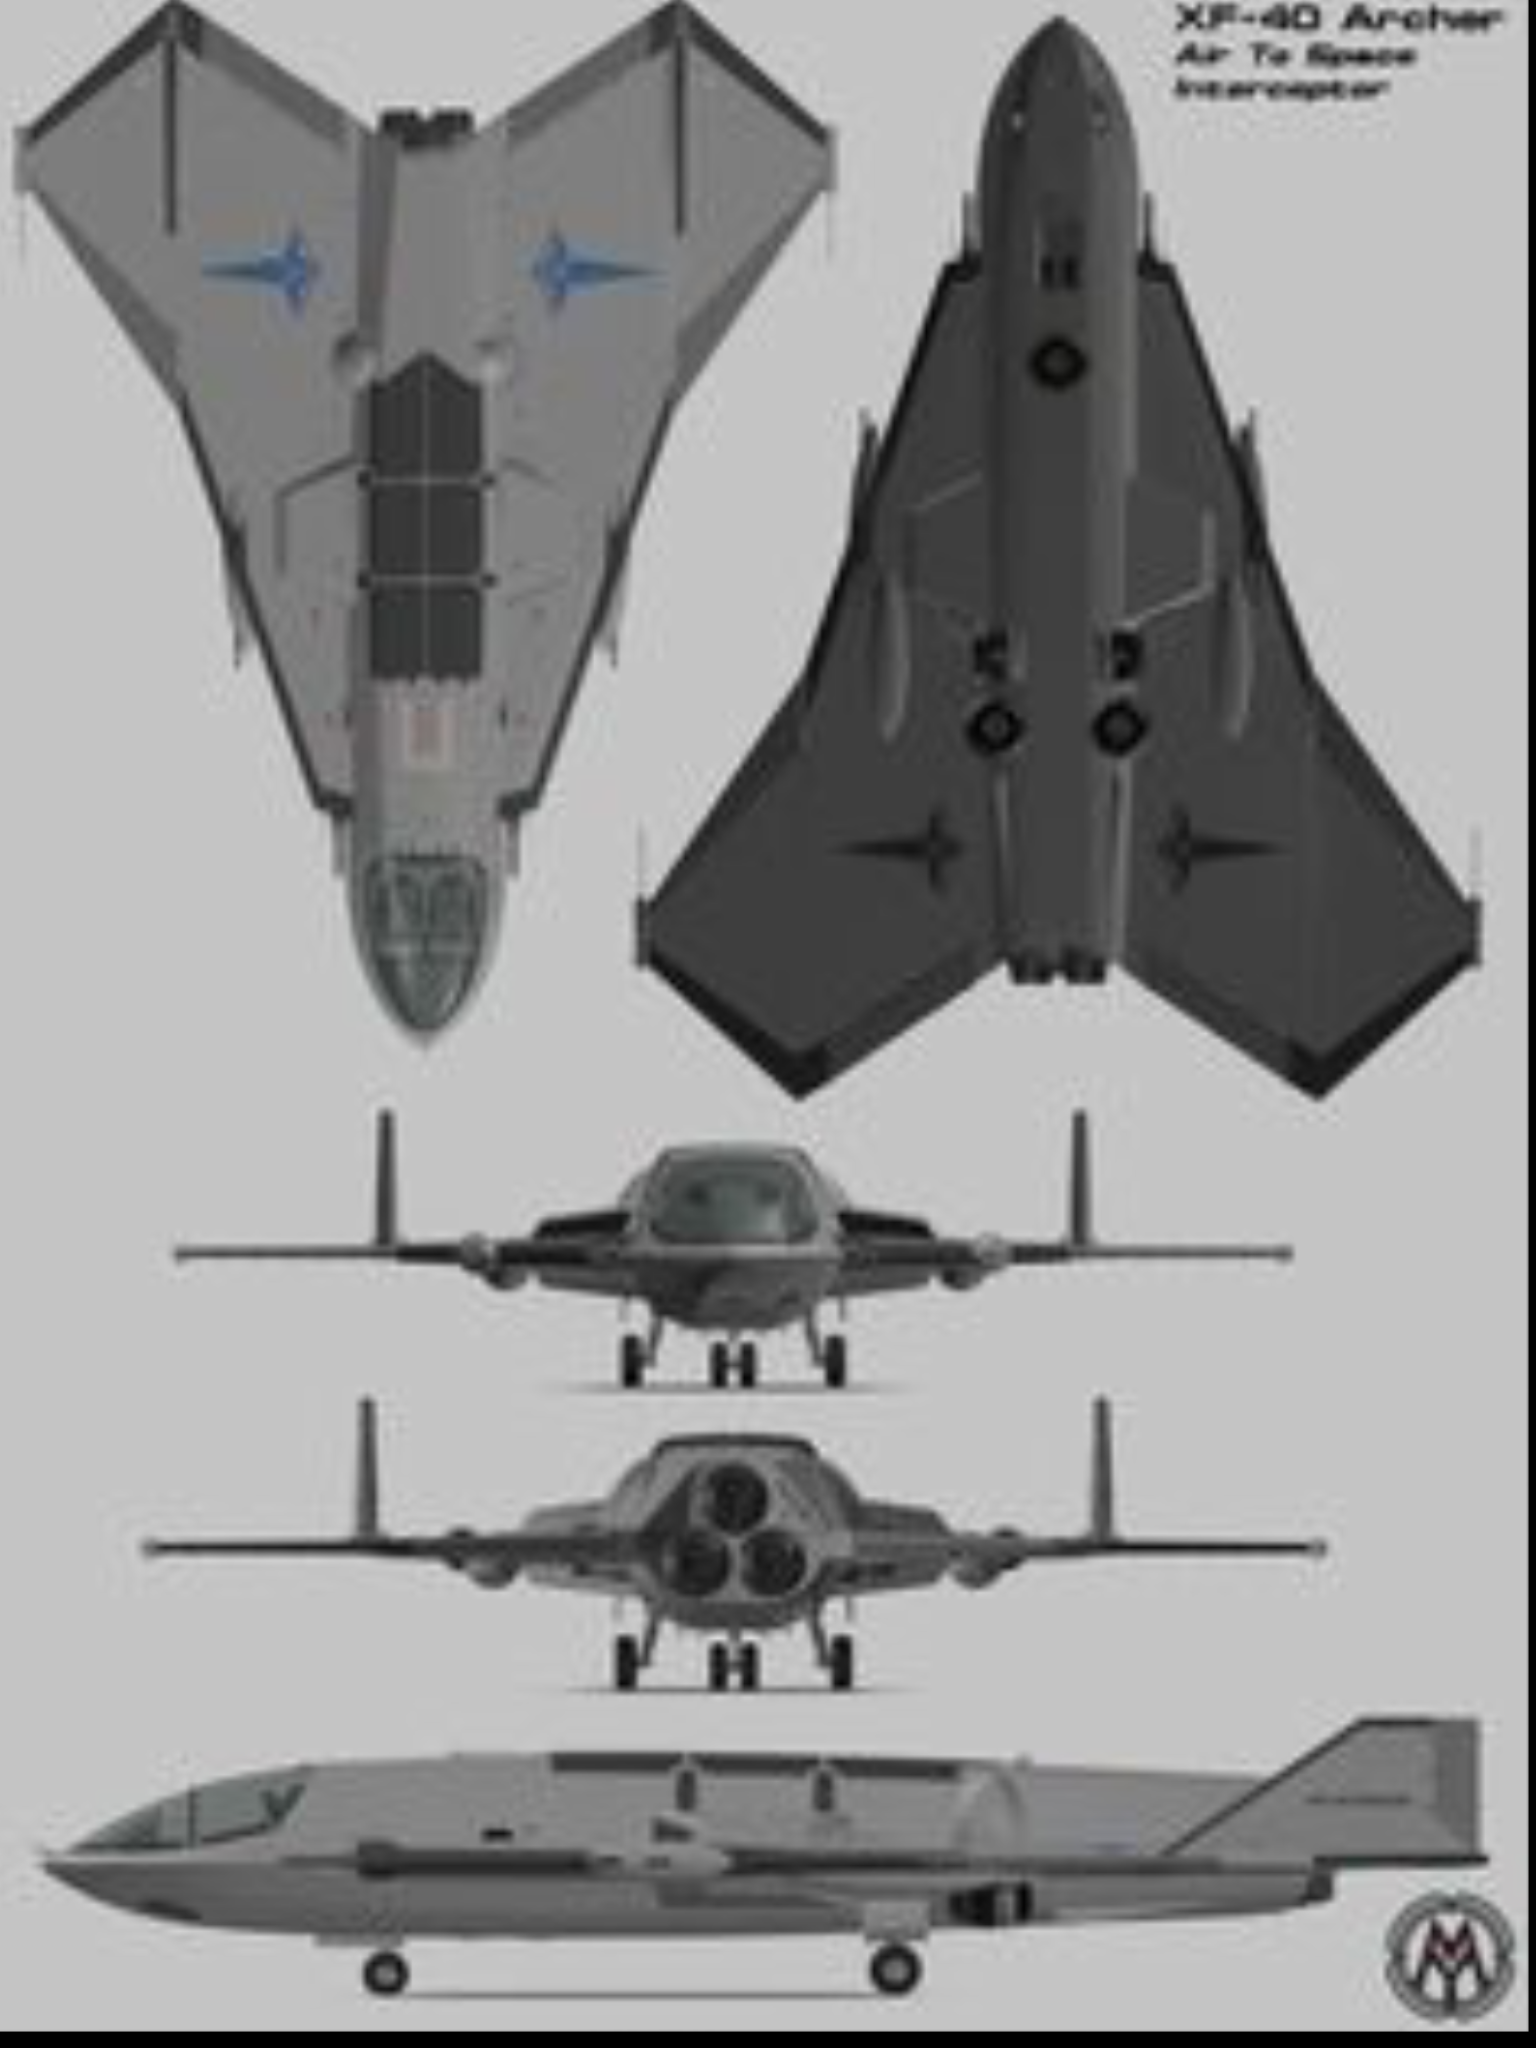 With the recent advances in technology and design aircraft concepts - Explore Concept Ships Concept Art And More